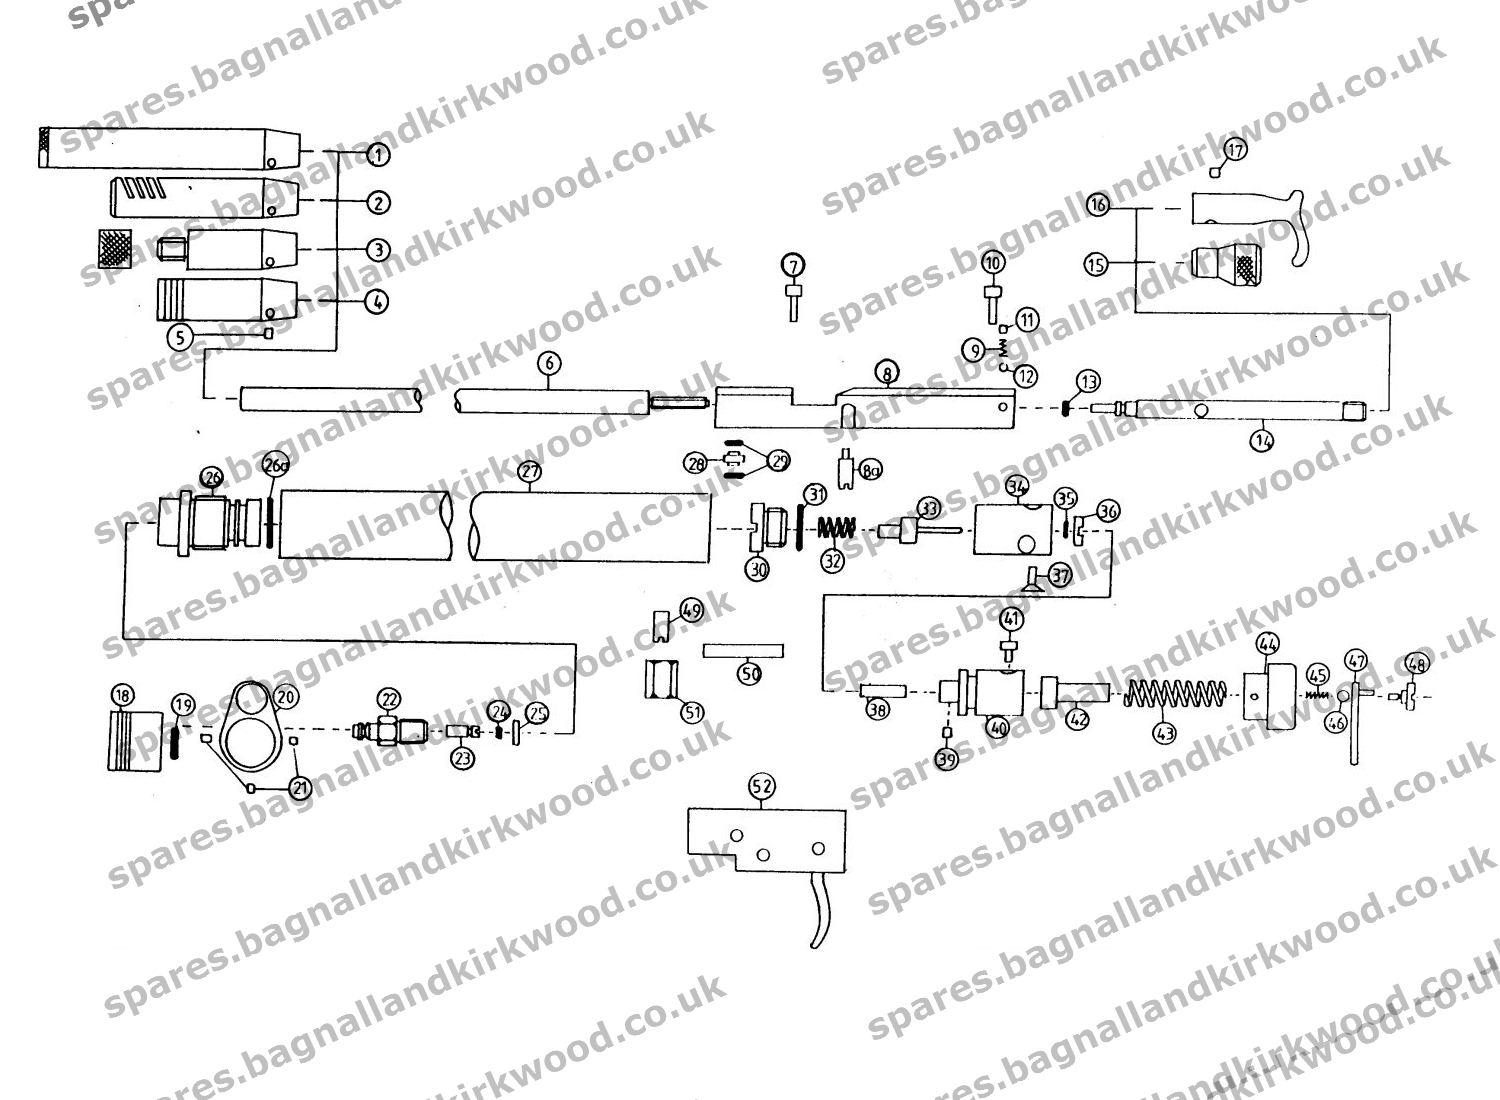 Diagram Of A Harrier Trusted Wiring Diagrams Engine Daystate Bagnall And Kirkwood Airgun Spares Av 8b Jump Jet